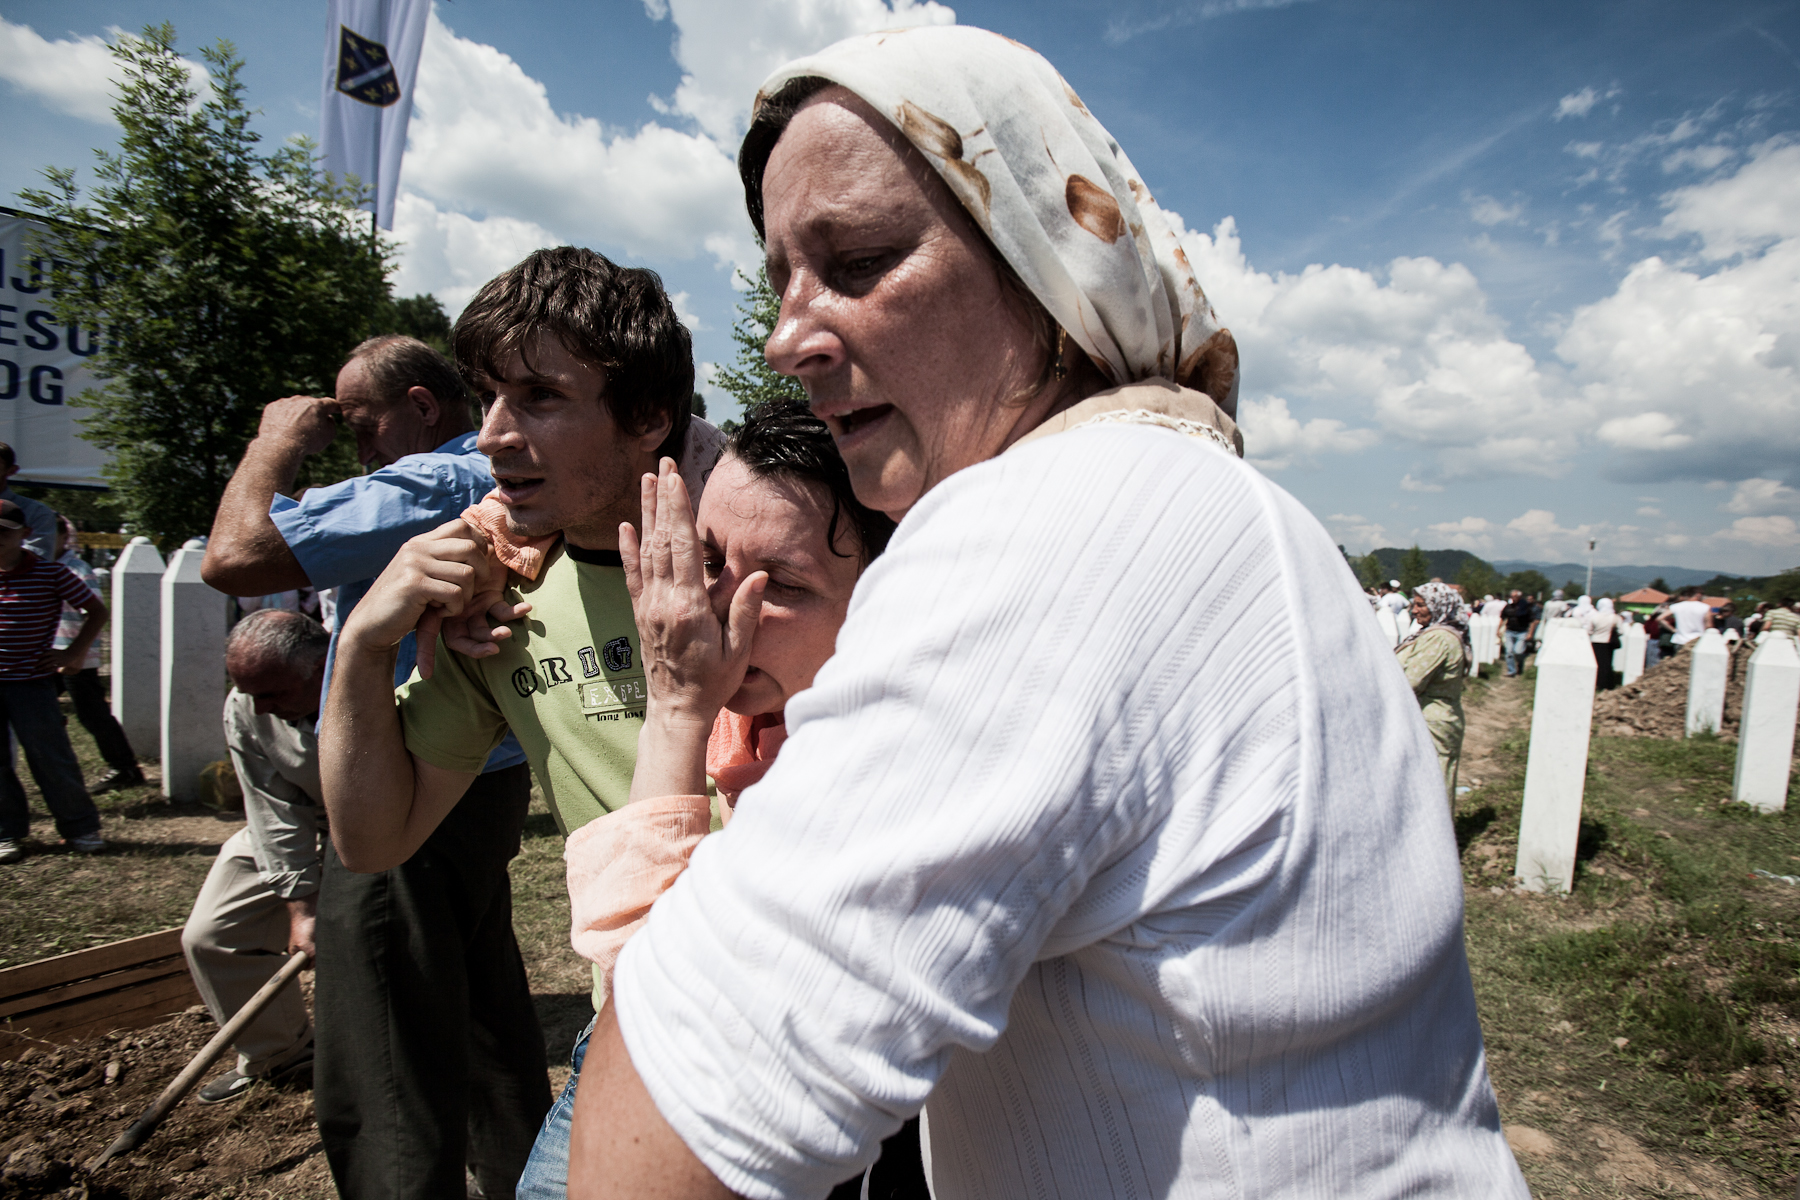 A woman who fainted is taken to the ambulance during the mass burial of 775 newly identified victims of the 1995 Srebrenica massacre in Potocari cemetery, July 11, 2010.